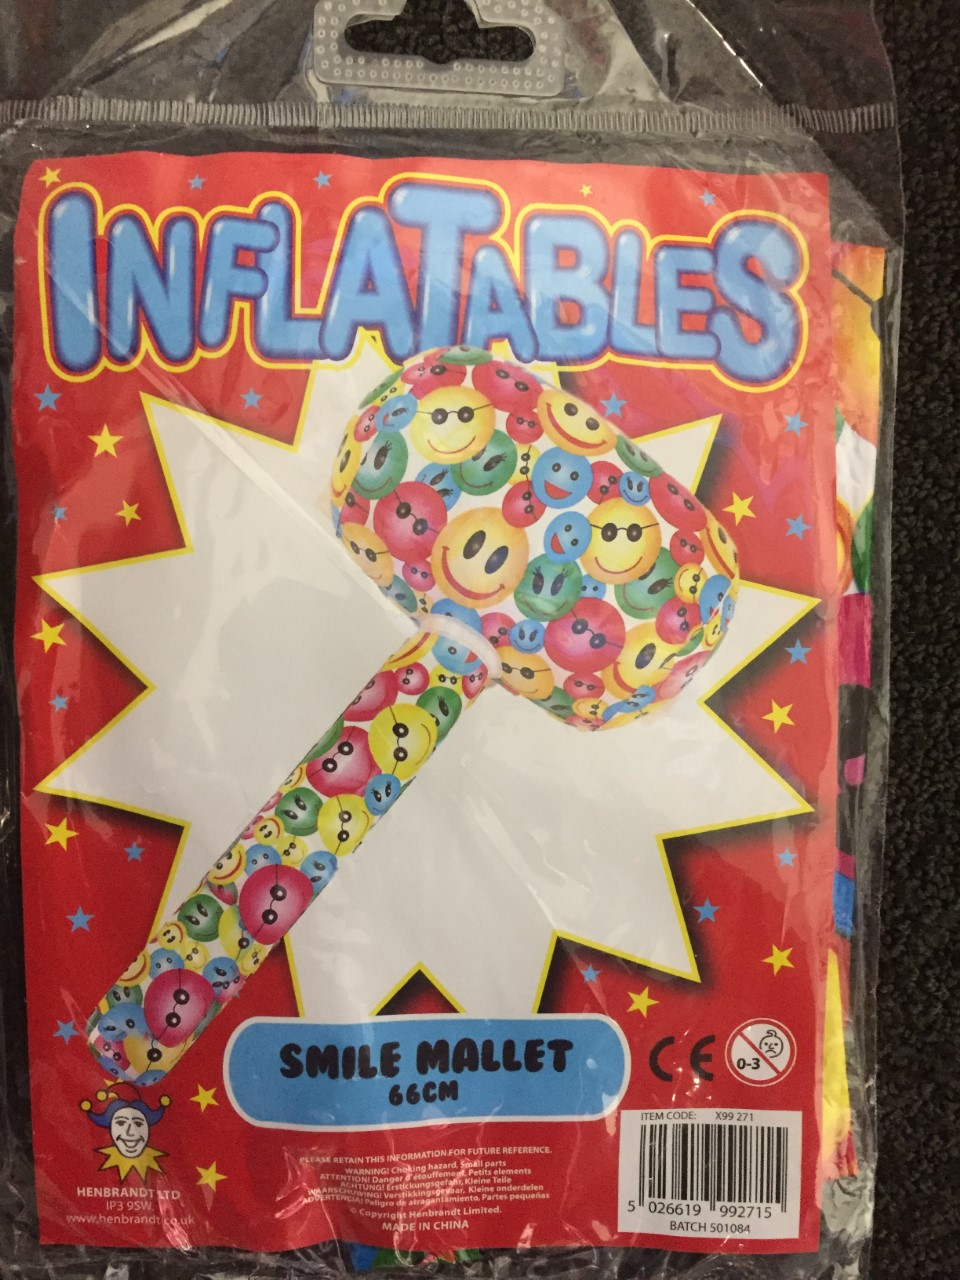 ACCESSORIES/INFLATABLES/ SMILE MALLET